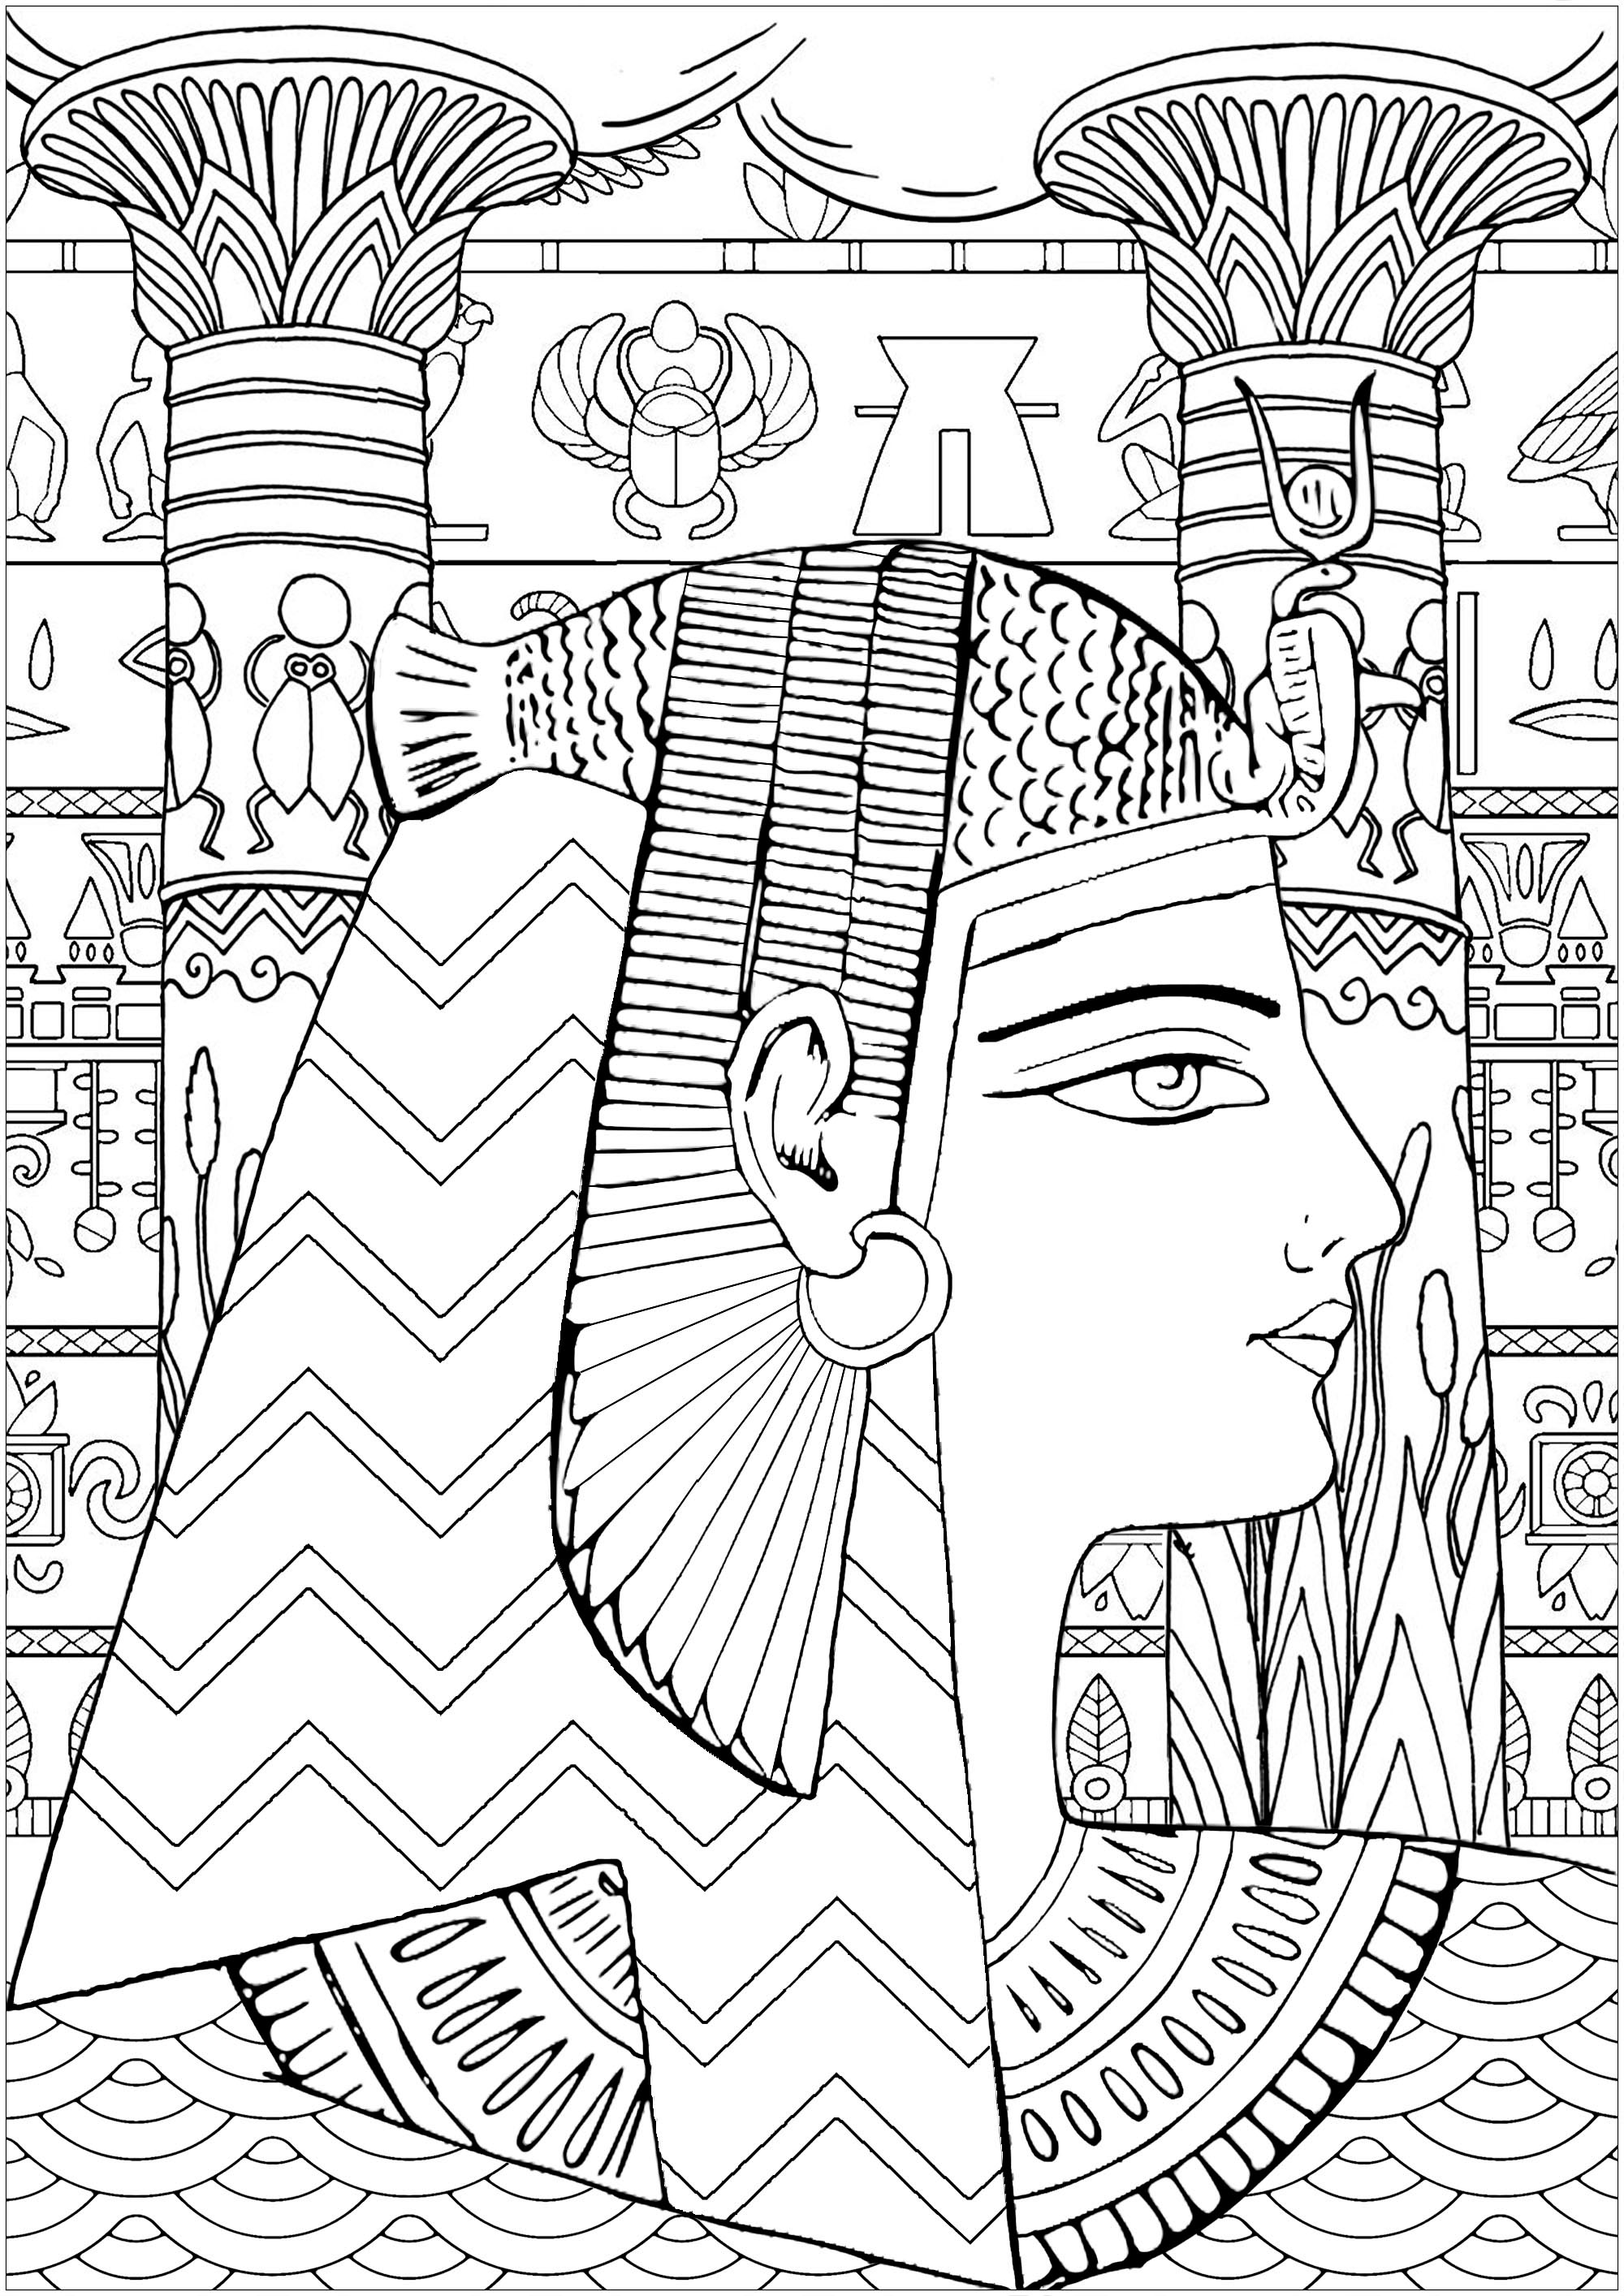 Color this beautiful Queen of Egypt with typical patterns, temple pillars and hieroglyphs in background - Difficult version